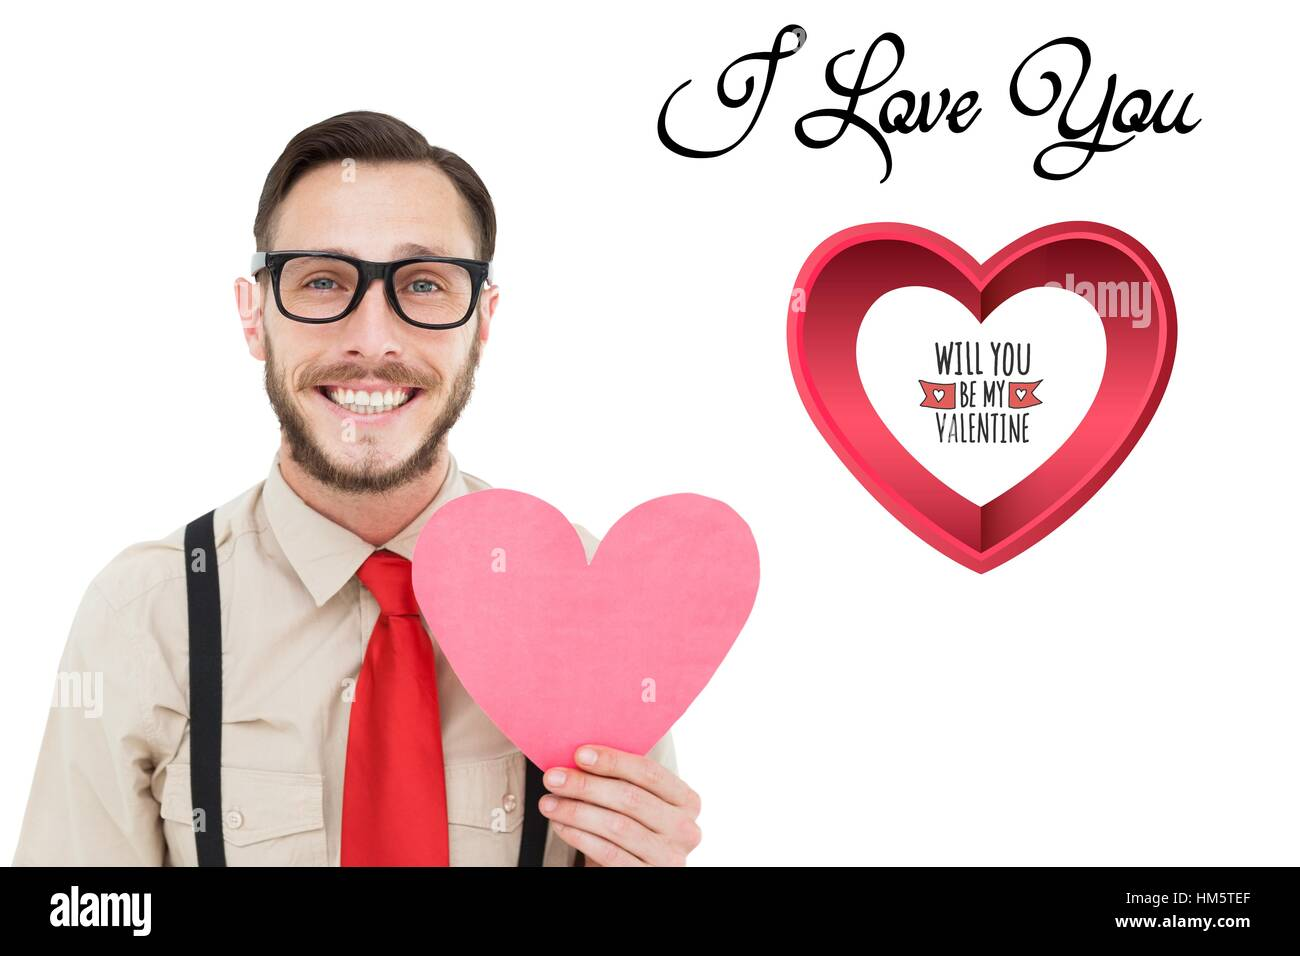 Nerd man holding pink heart with I love u message - Stock Image